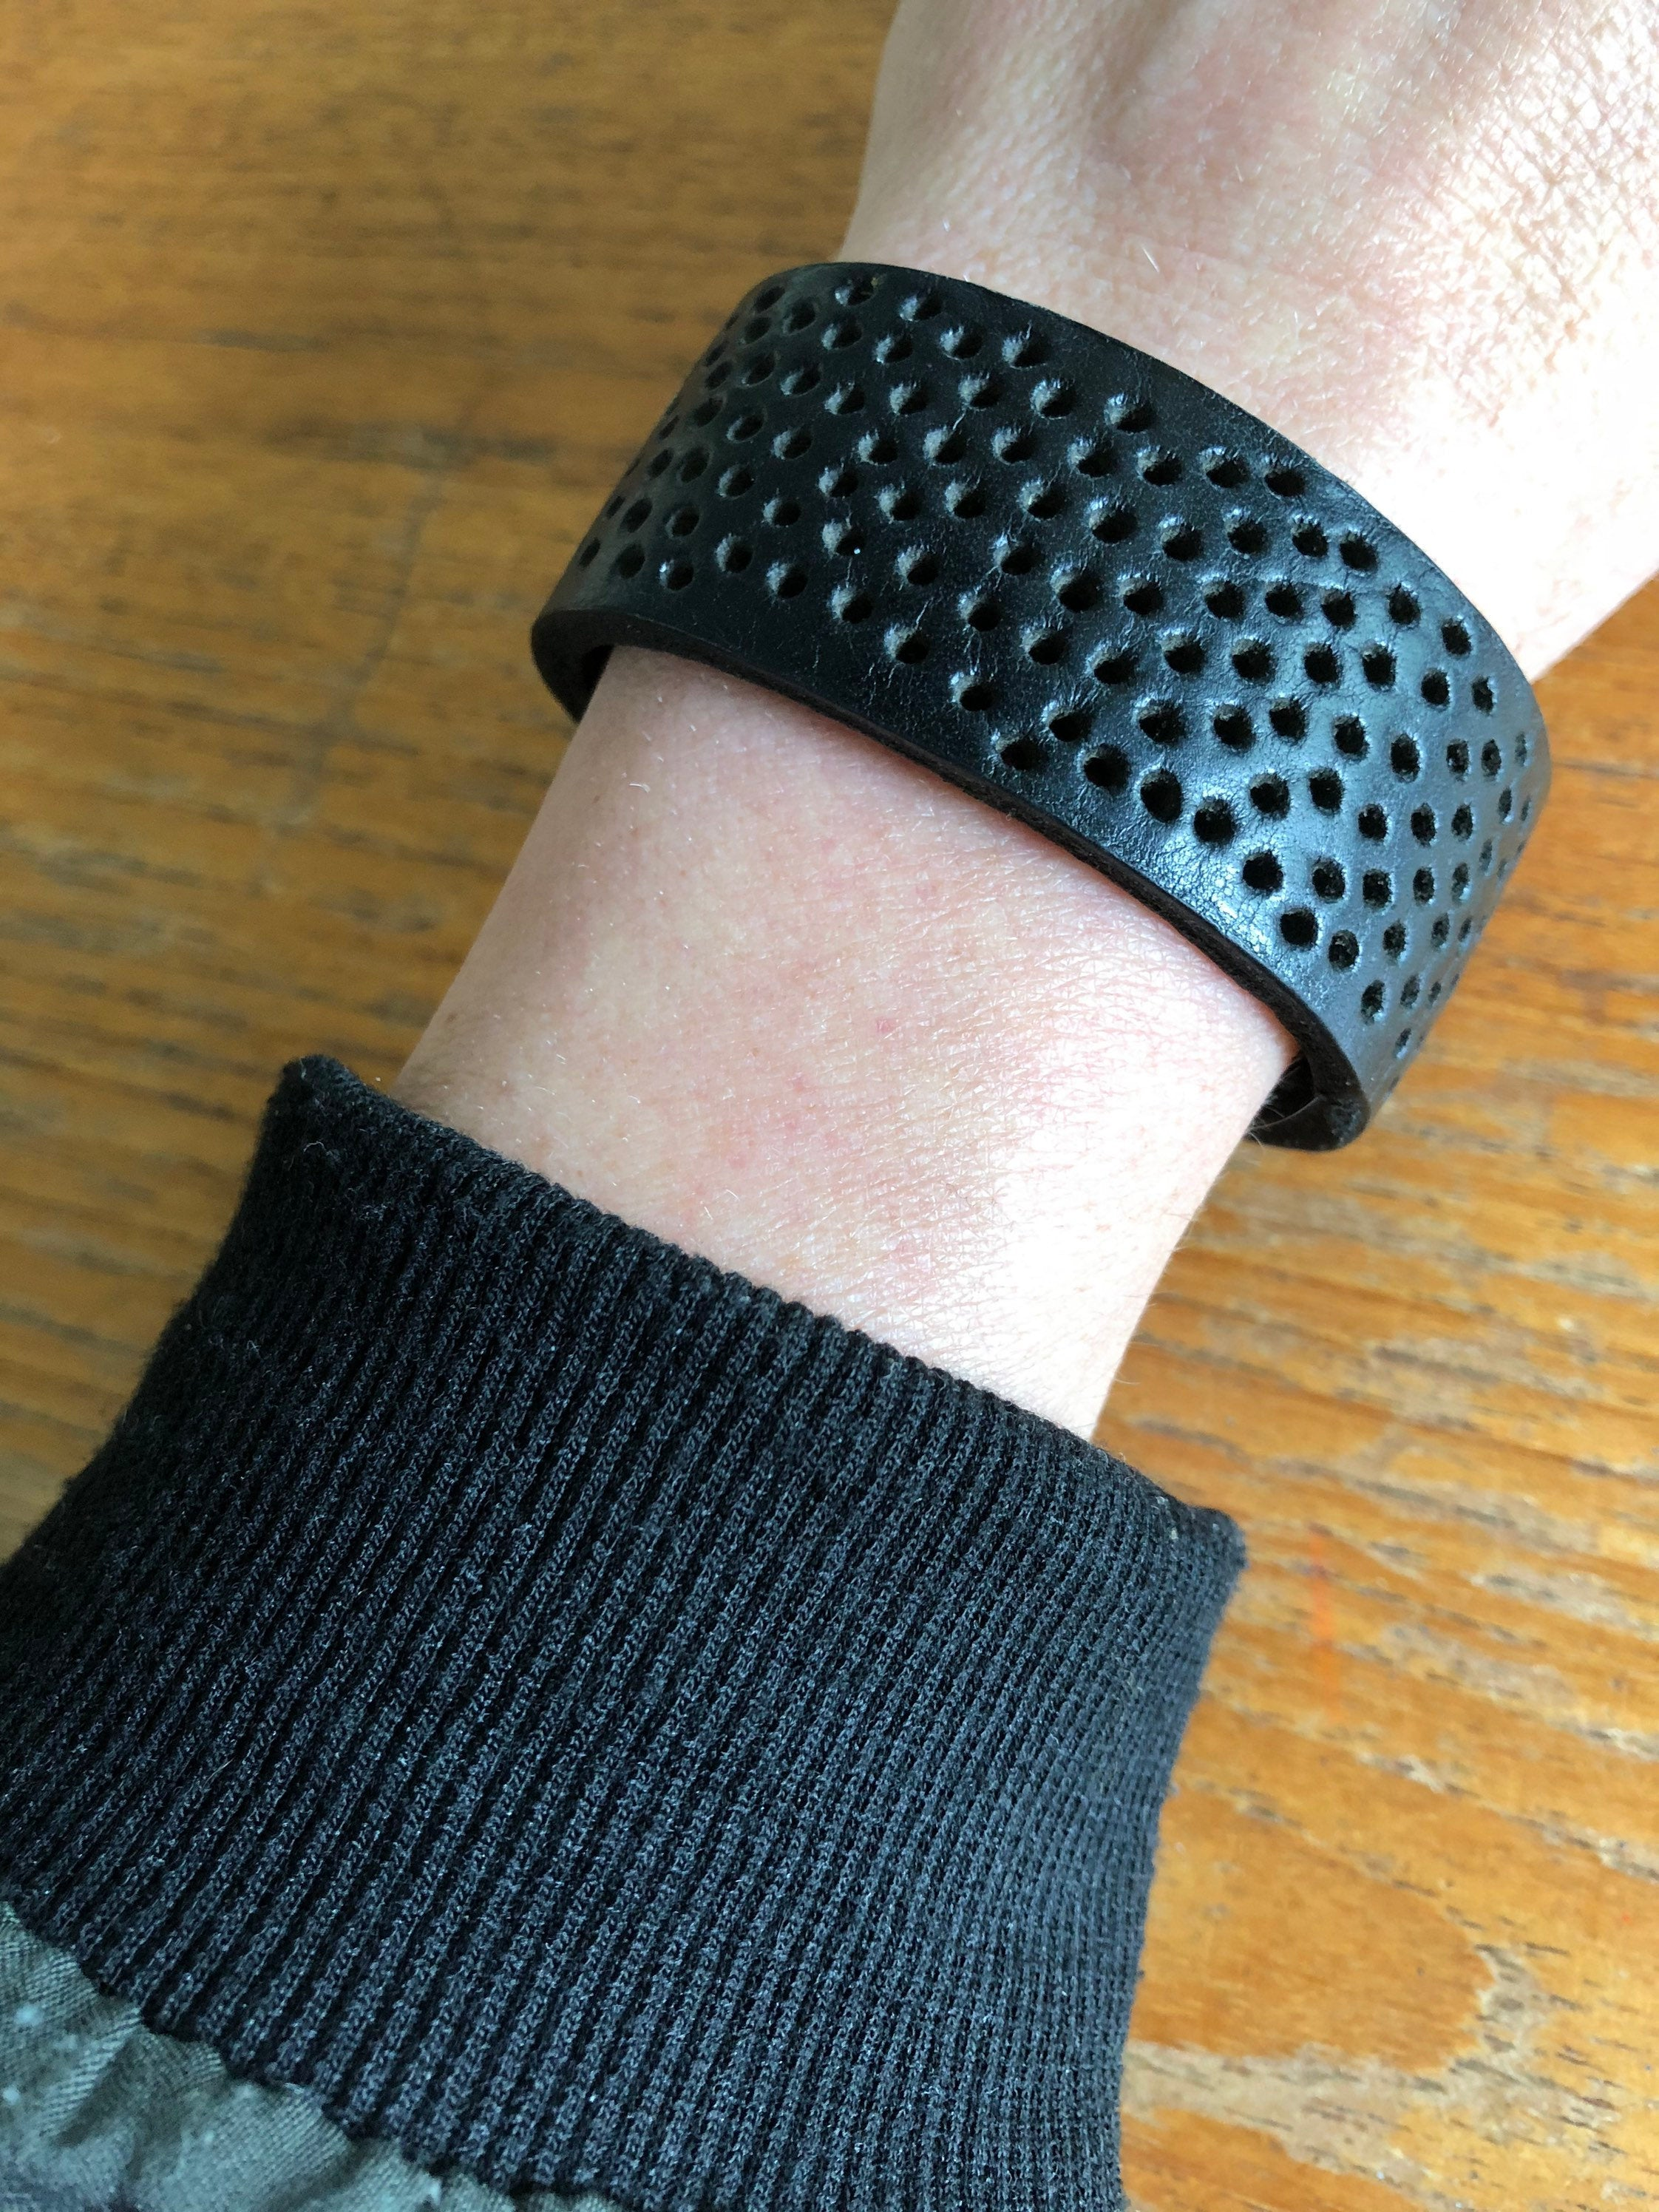 Black leather cuff bracelet with perforated detail worn by model with black and green sleeve